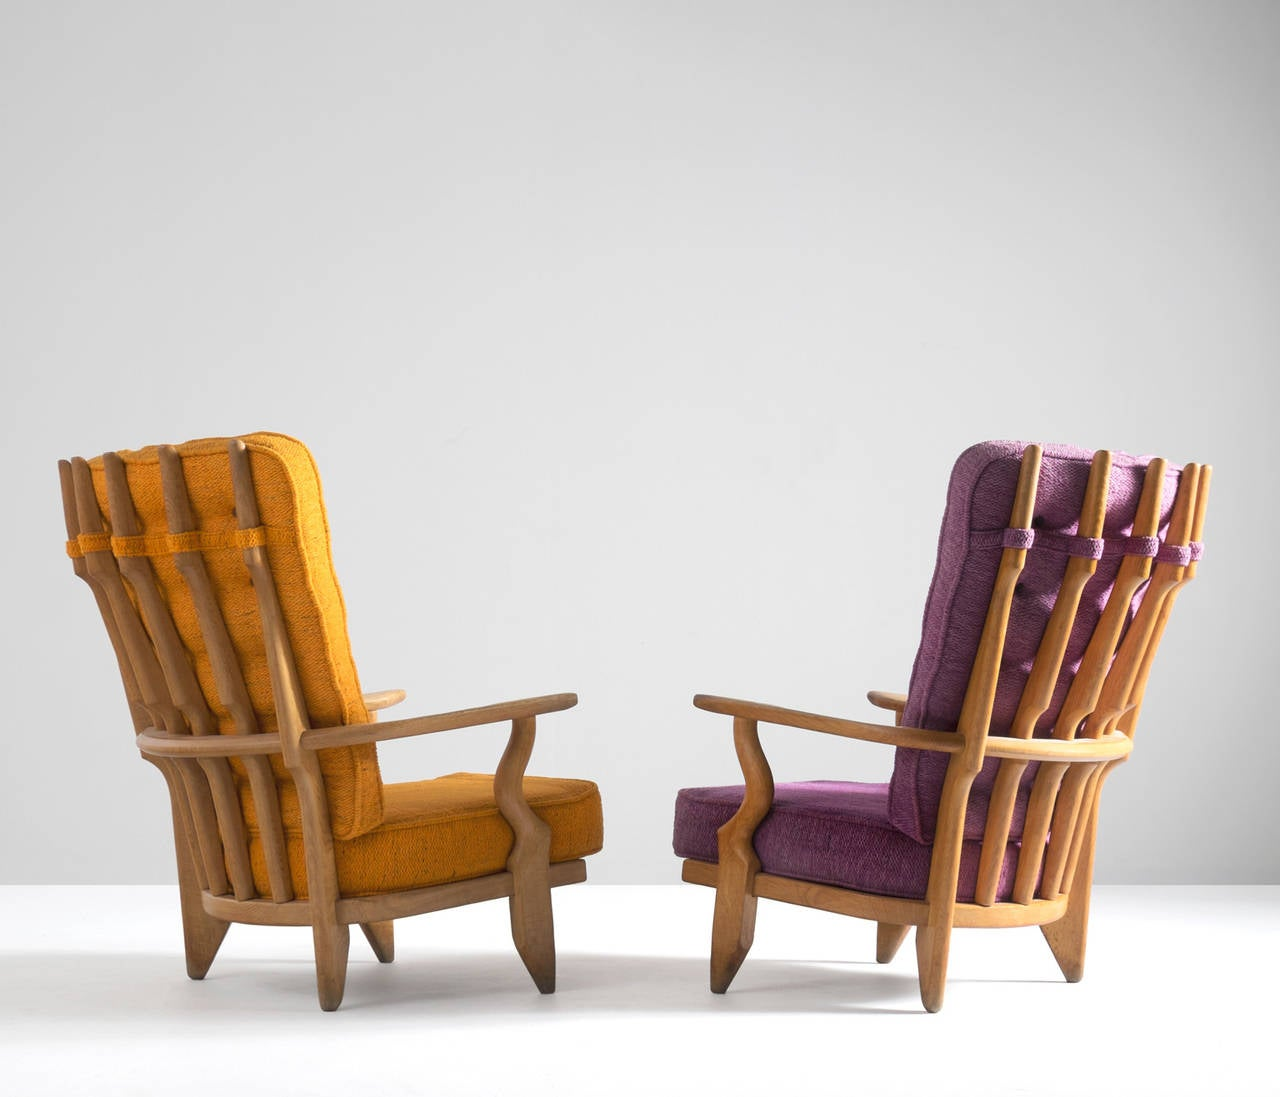 Two extraordinary French Guillerme & Chambron high back lounge chairs in solid oak with the typical characteristic decorative details at the backs. 